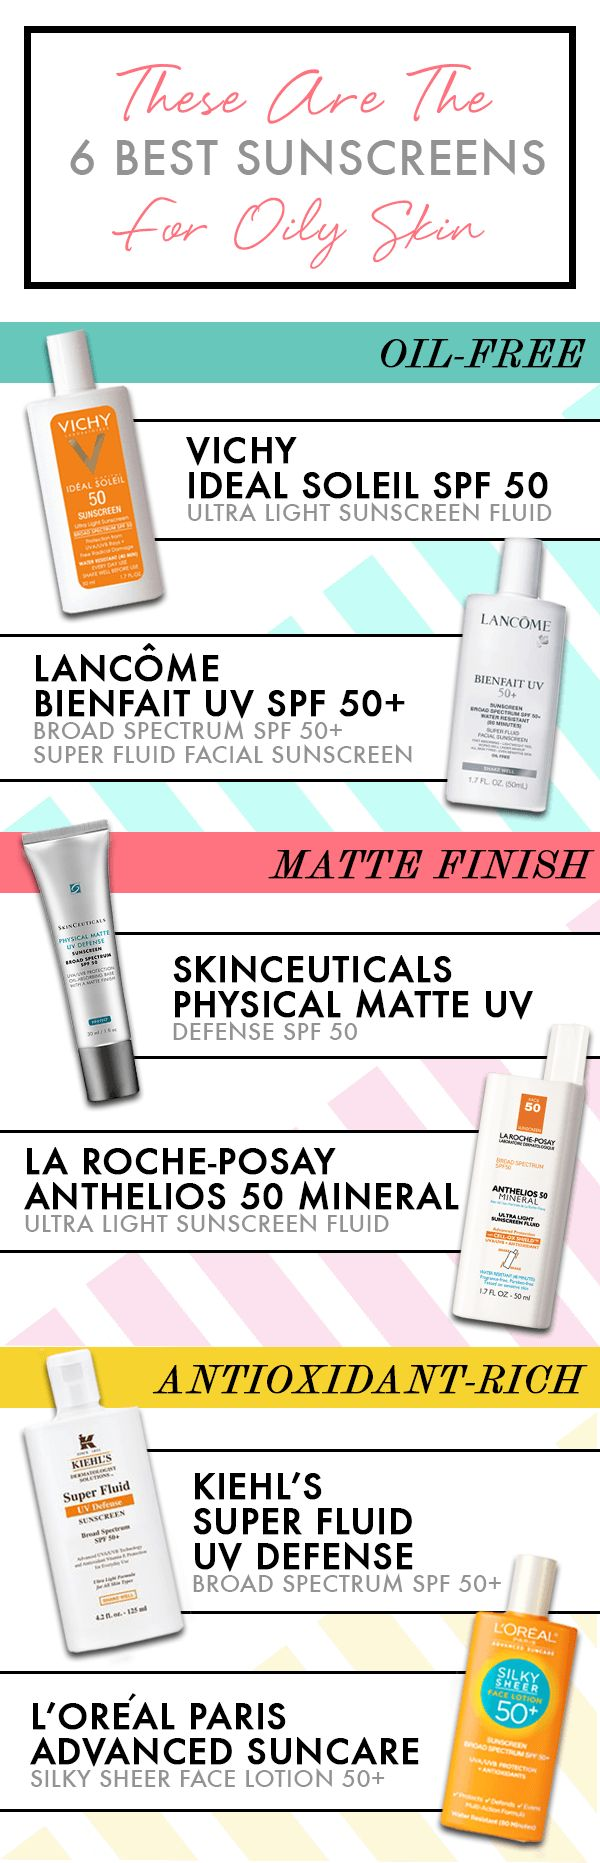 Ladies with oily skin have to be extra careful when choosing a sunscreen. These are the best sunscreens for girls with oily skin. Take a look and get ready to find your perfect sunscreen match.